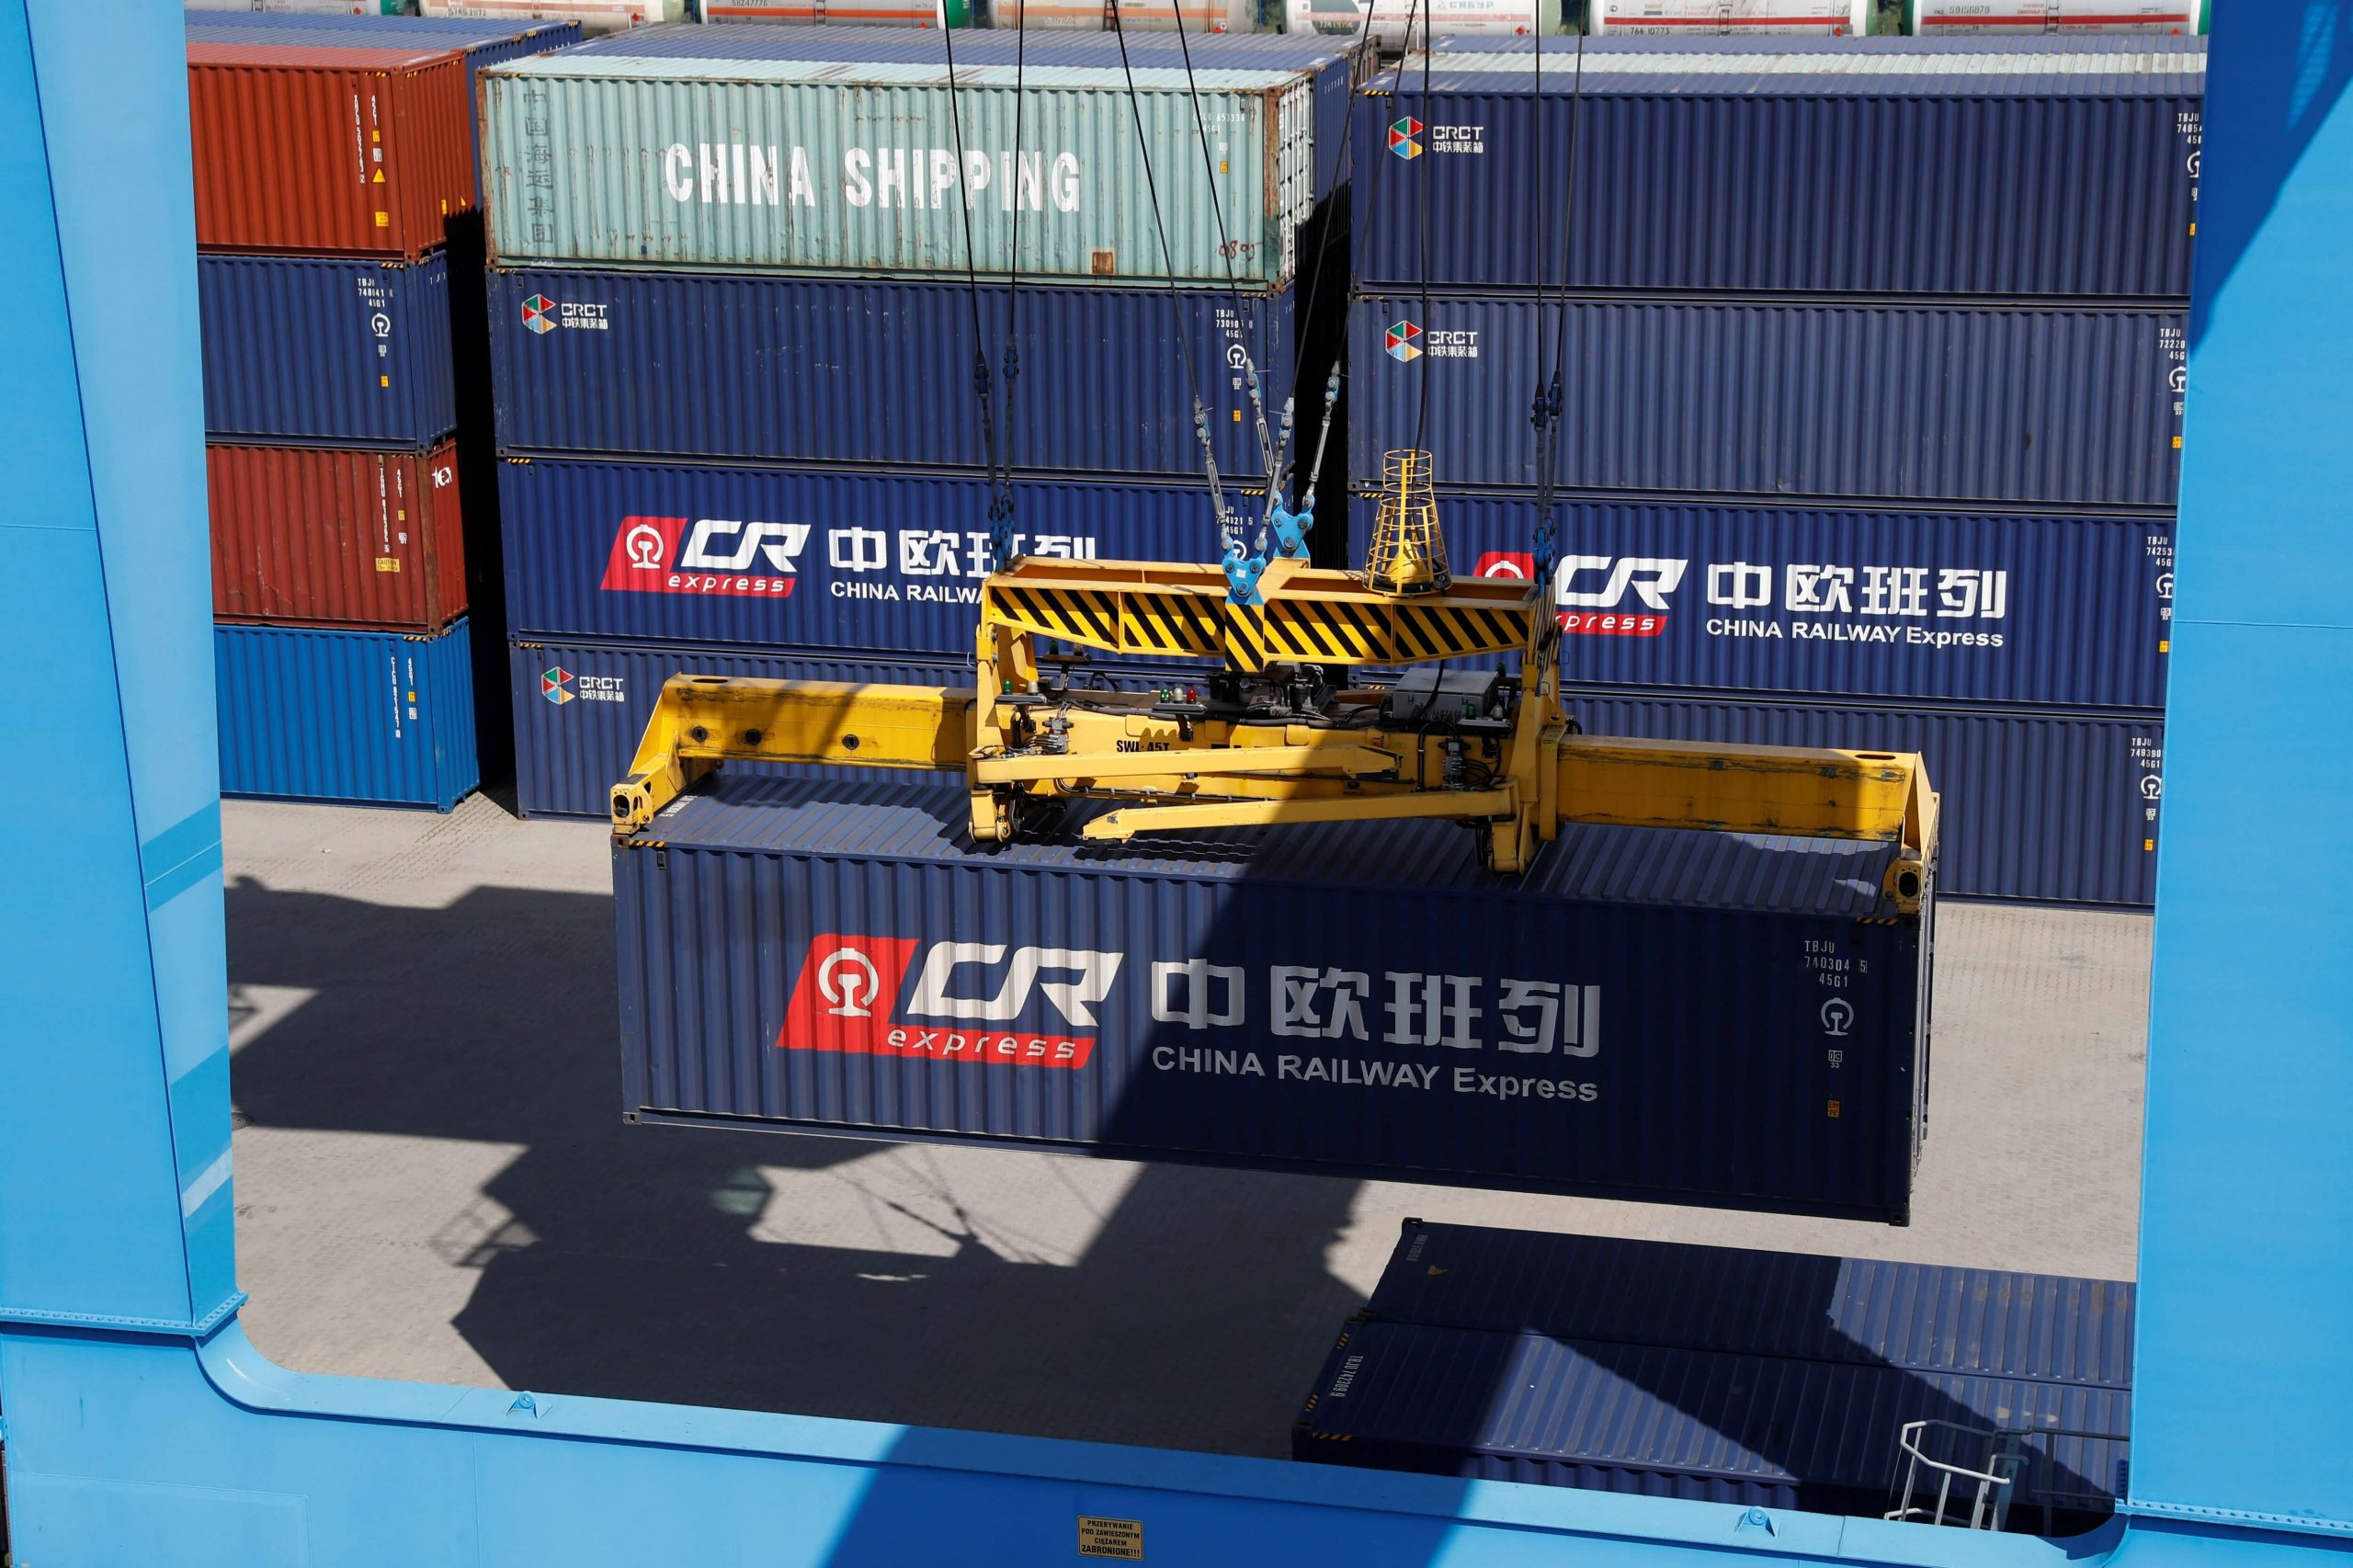 Poland Today » Poland & CEE: the buckle on the Belt & Road?